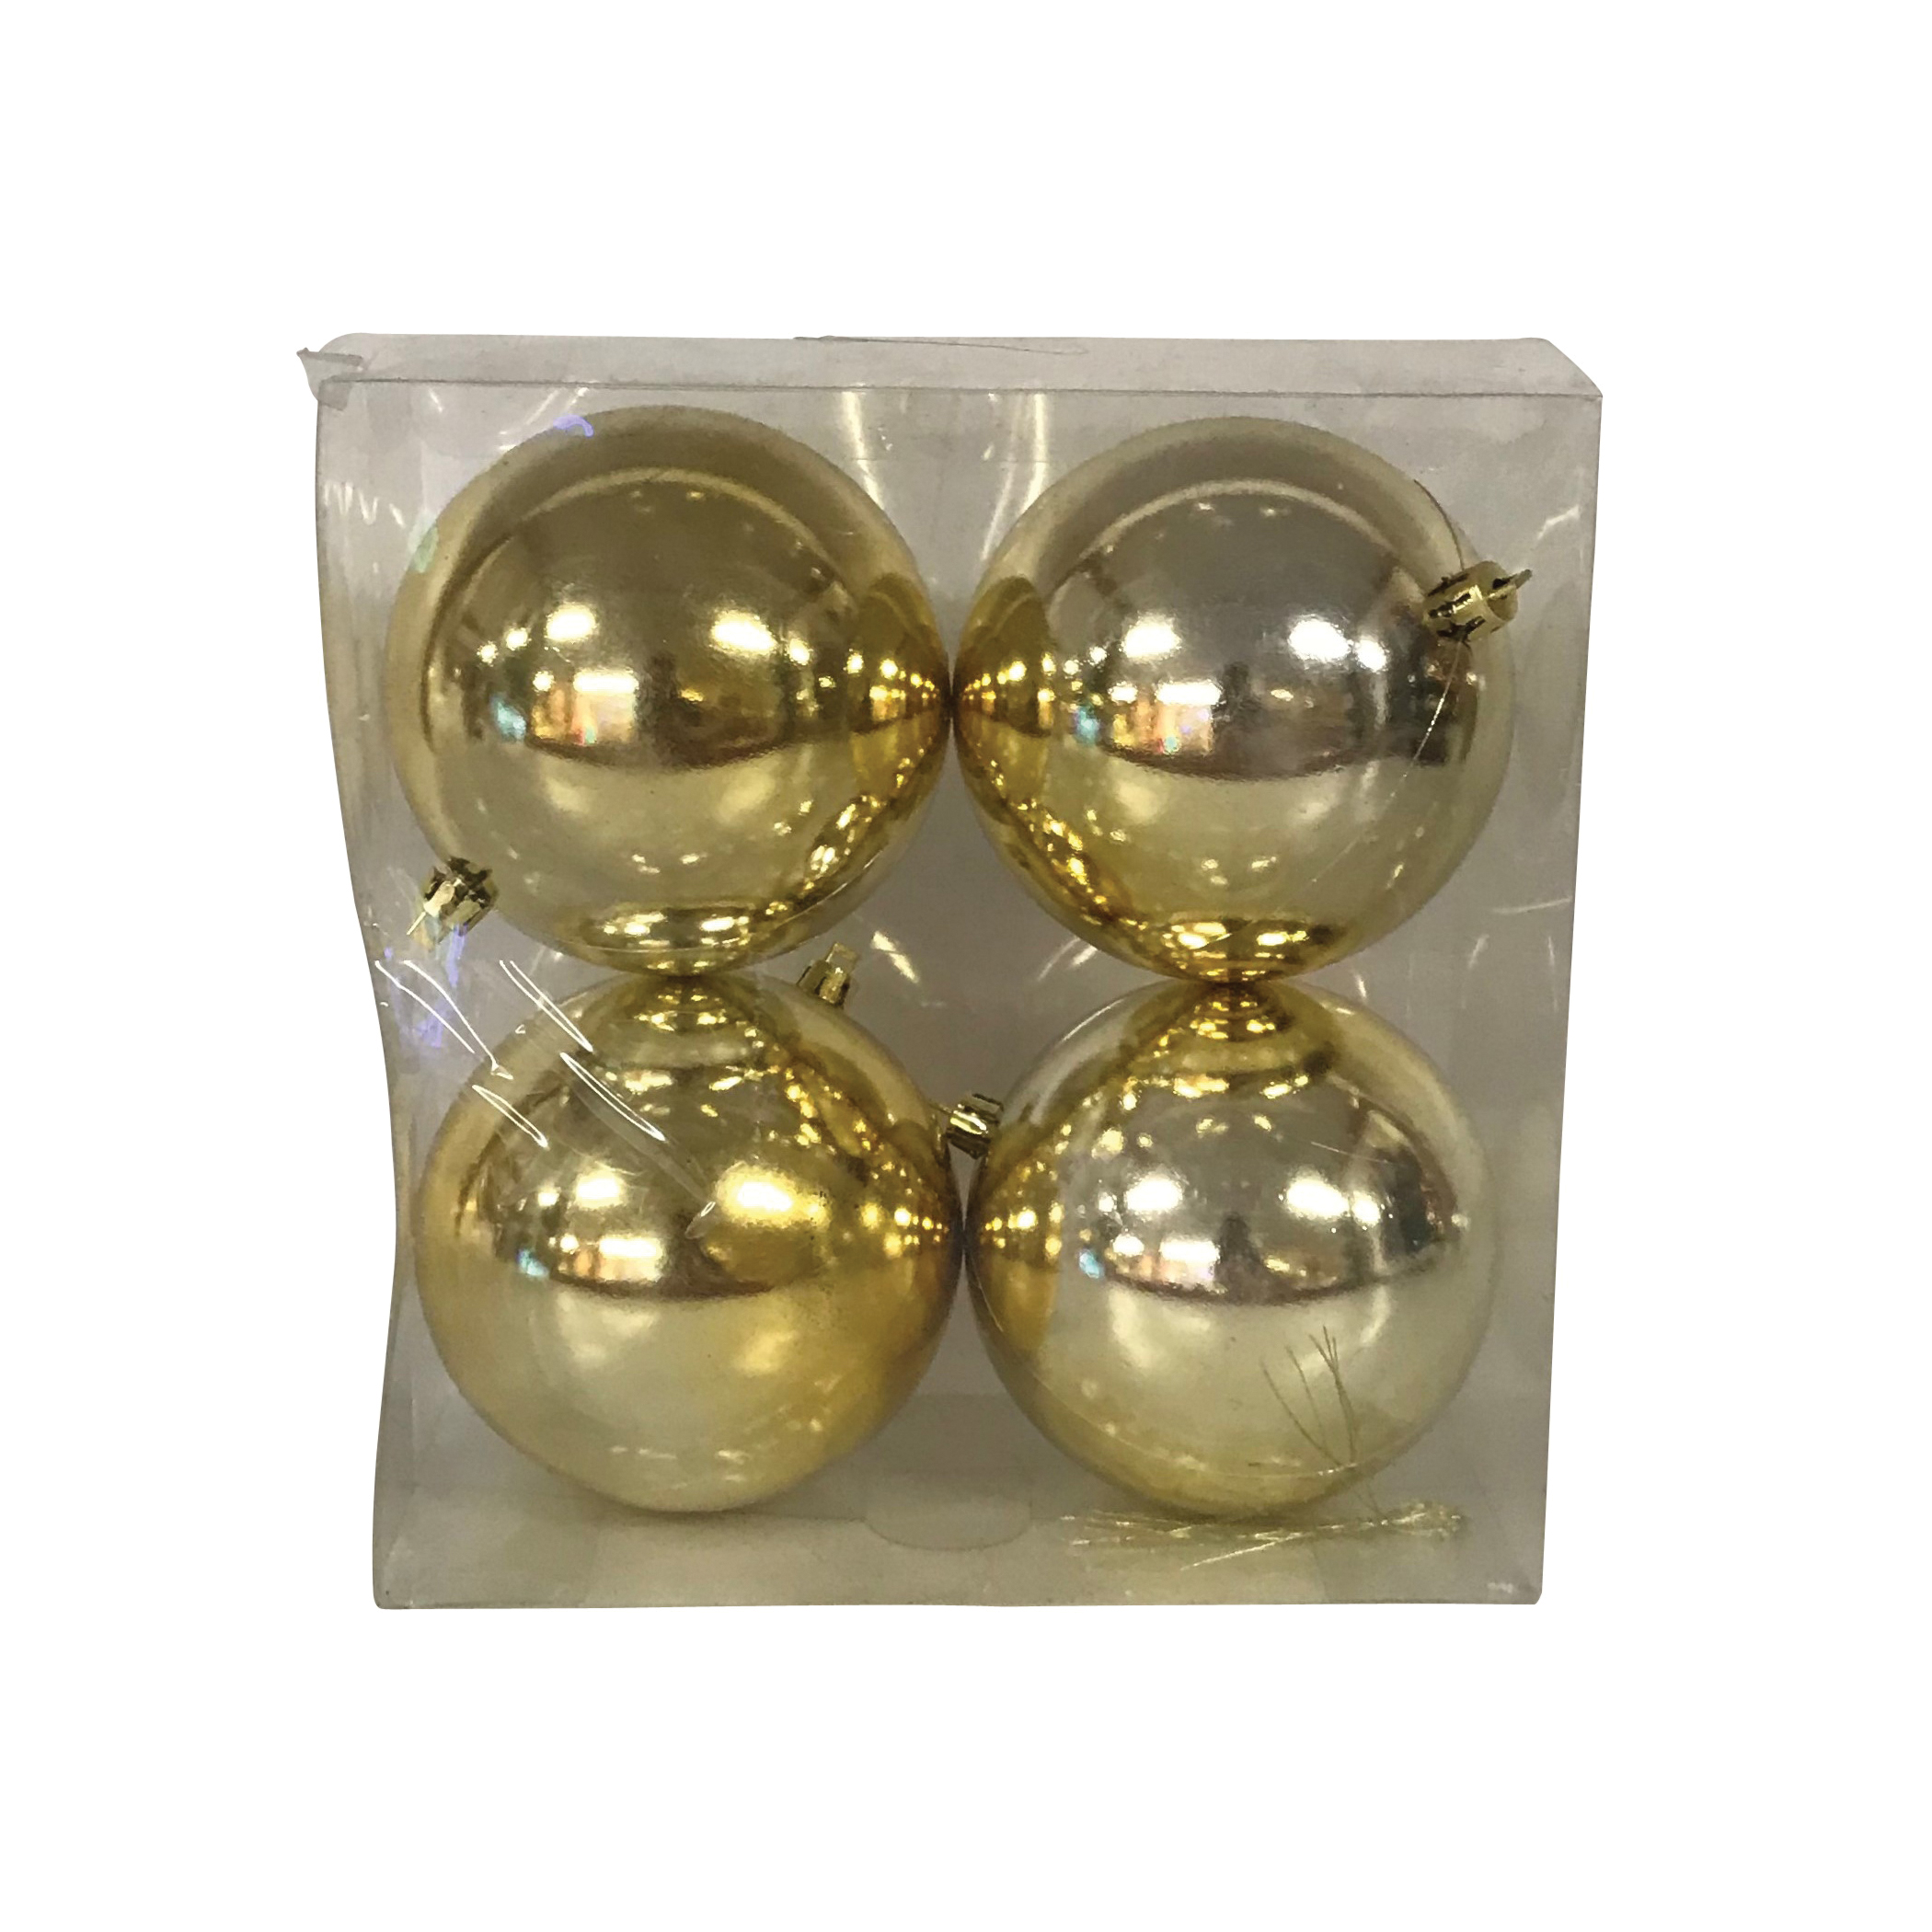 Picture of Santas Forest 99925 Shatterproof Shiny Ball Ornament, 100 mm H, Christmas Ornaments, PVC, Assorted, 4, Acetate Box